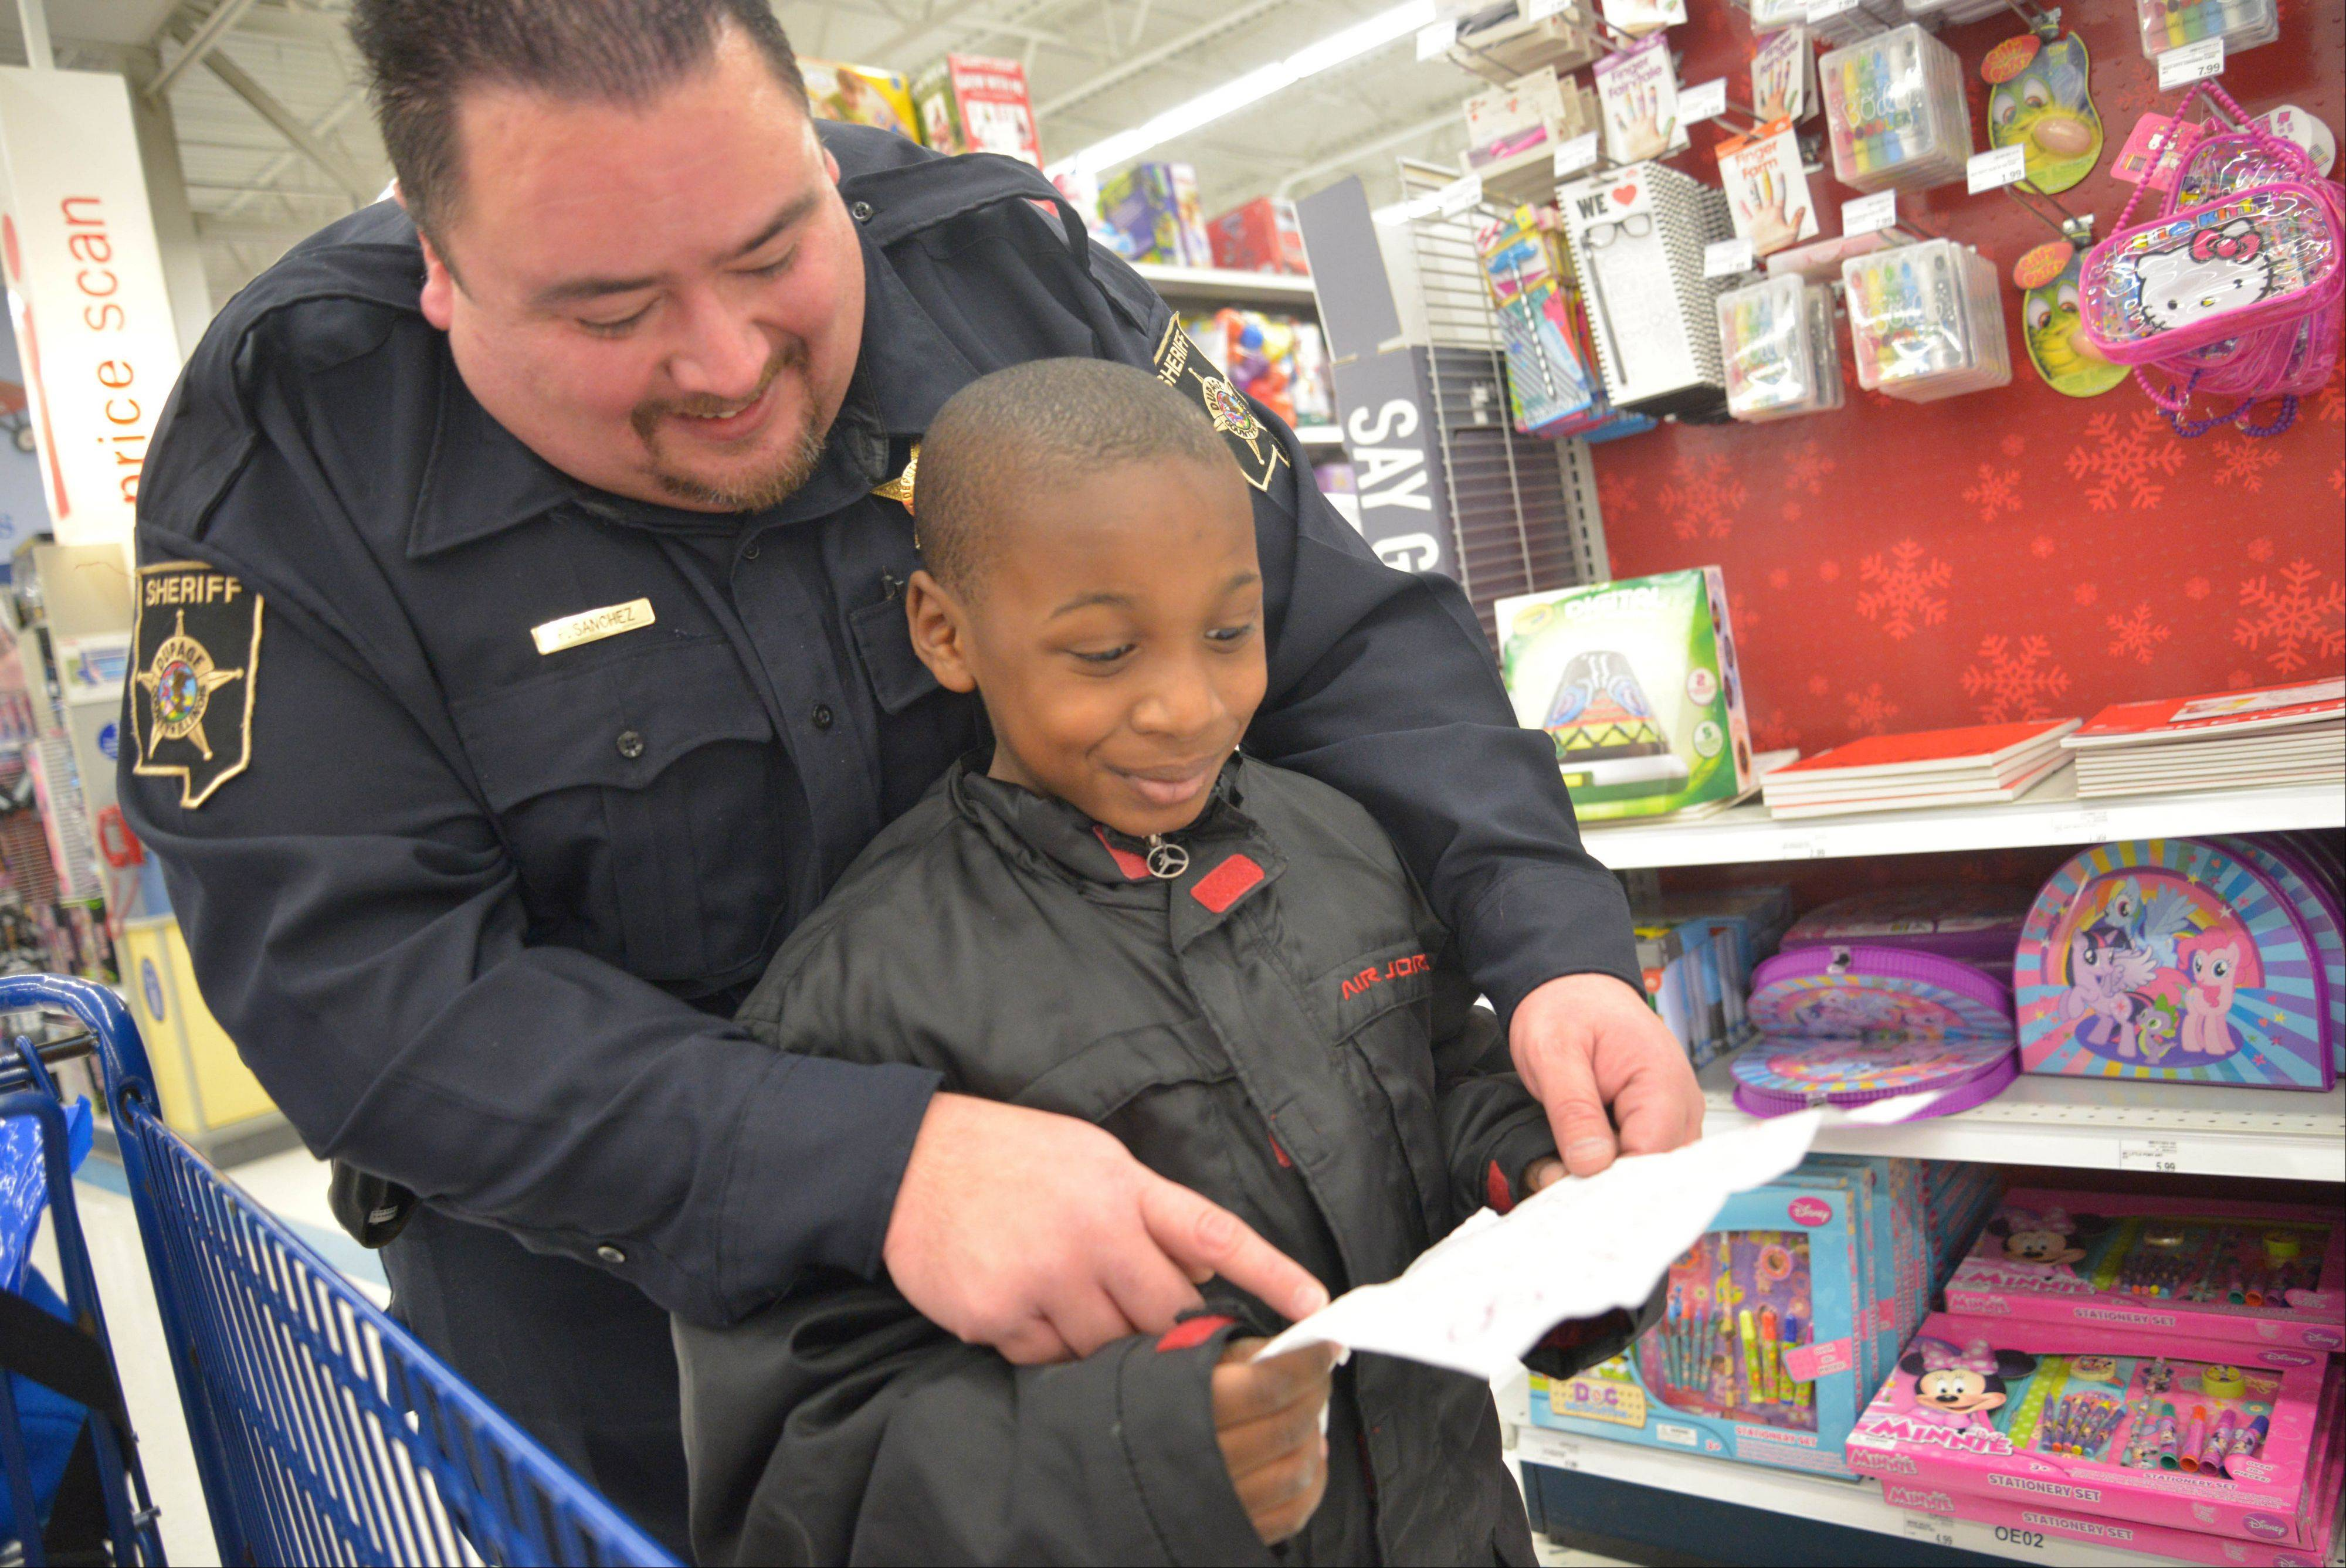 DuPage County sheriff's Deputy Fernando Sanchez helps Kaleb Vaughn, 8, of Hanover Park check his shopping list Saturday at Meijer in Bloomingdale. DuPage's sheriff's office, an officers union, chiefs of police association and departments from at least nine towns combined to brighten the holidays for 70 children.